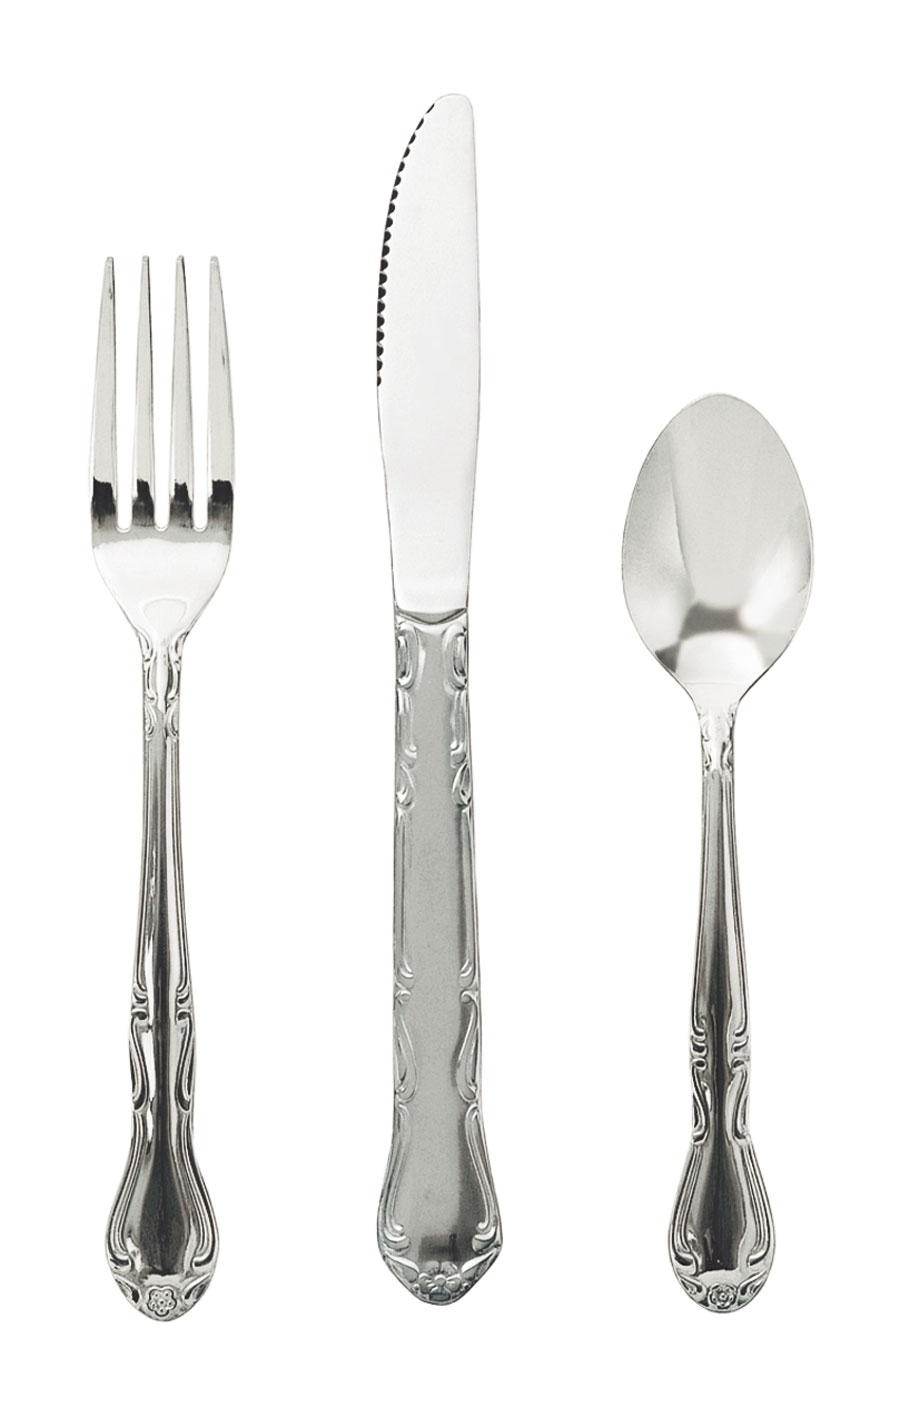 CE-205 Update International - Dinner Fork, 18/0 stainless steel, bright polish